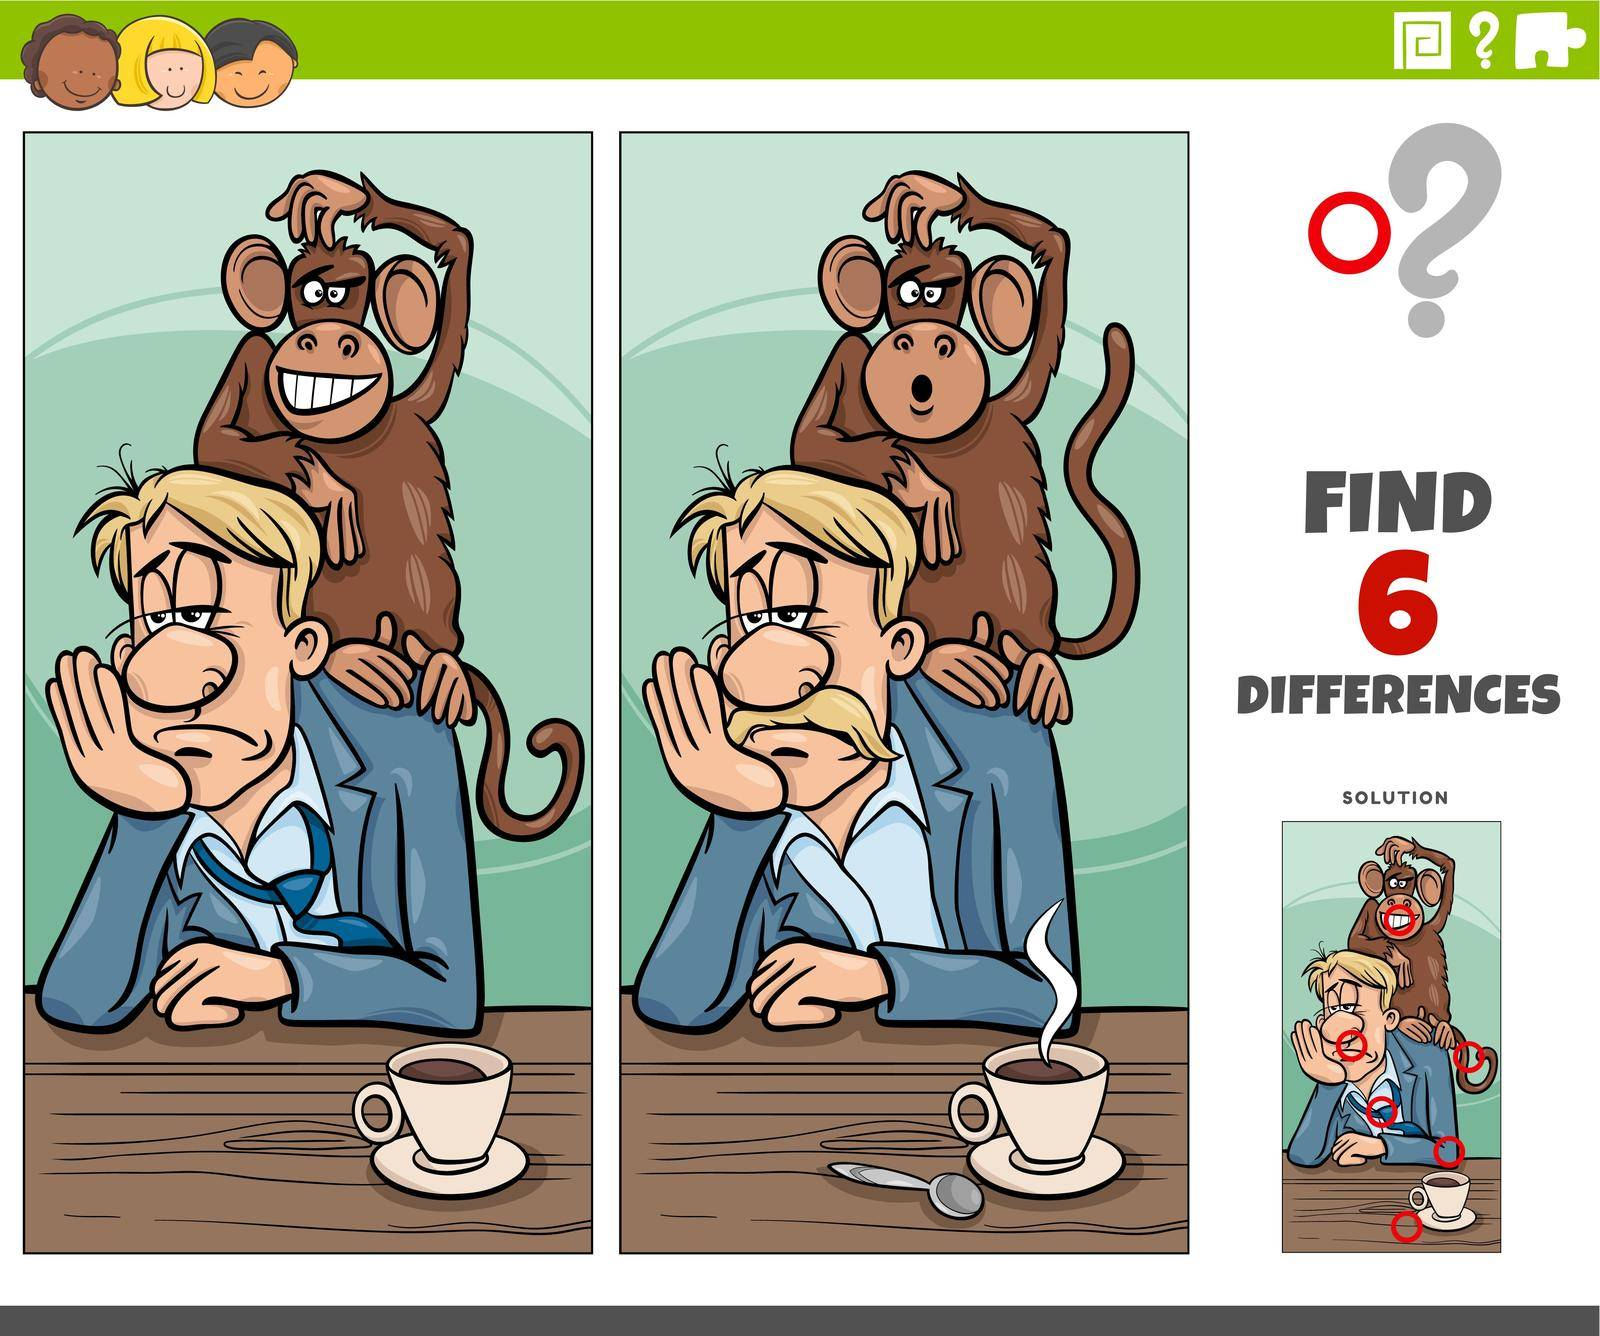 Cartoon illustration of finding the differences between pictures educational game with monkey on your back saying or proverb